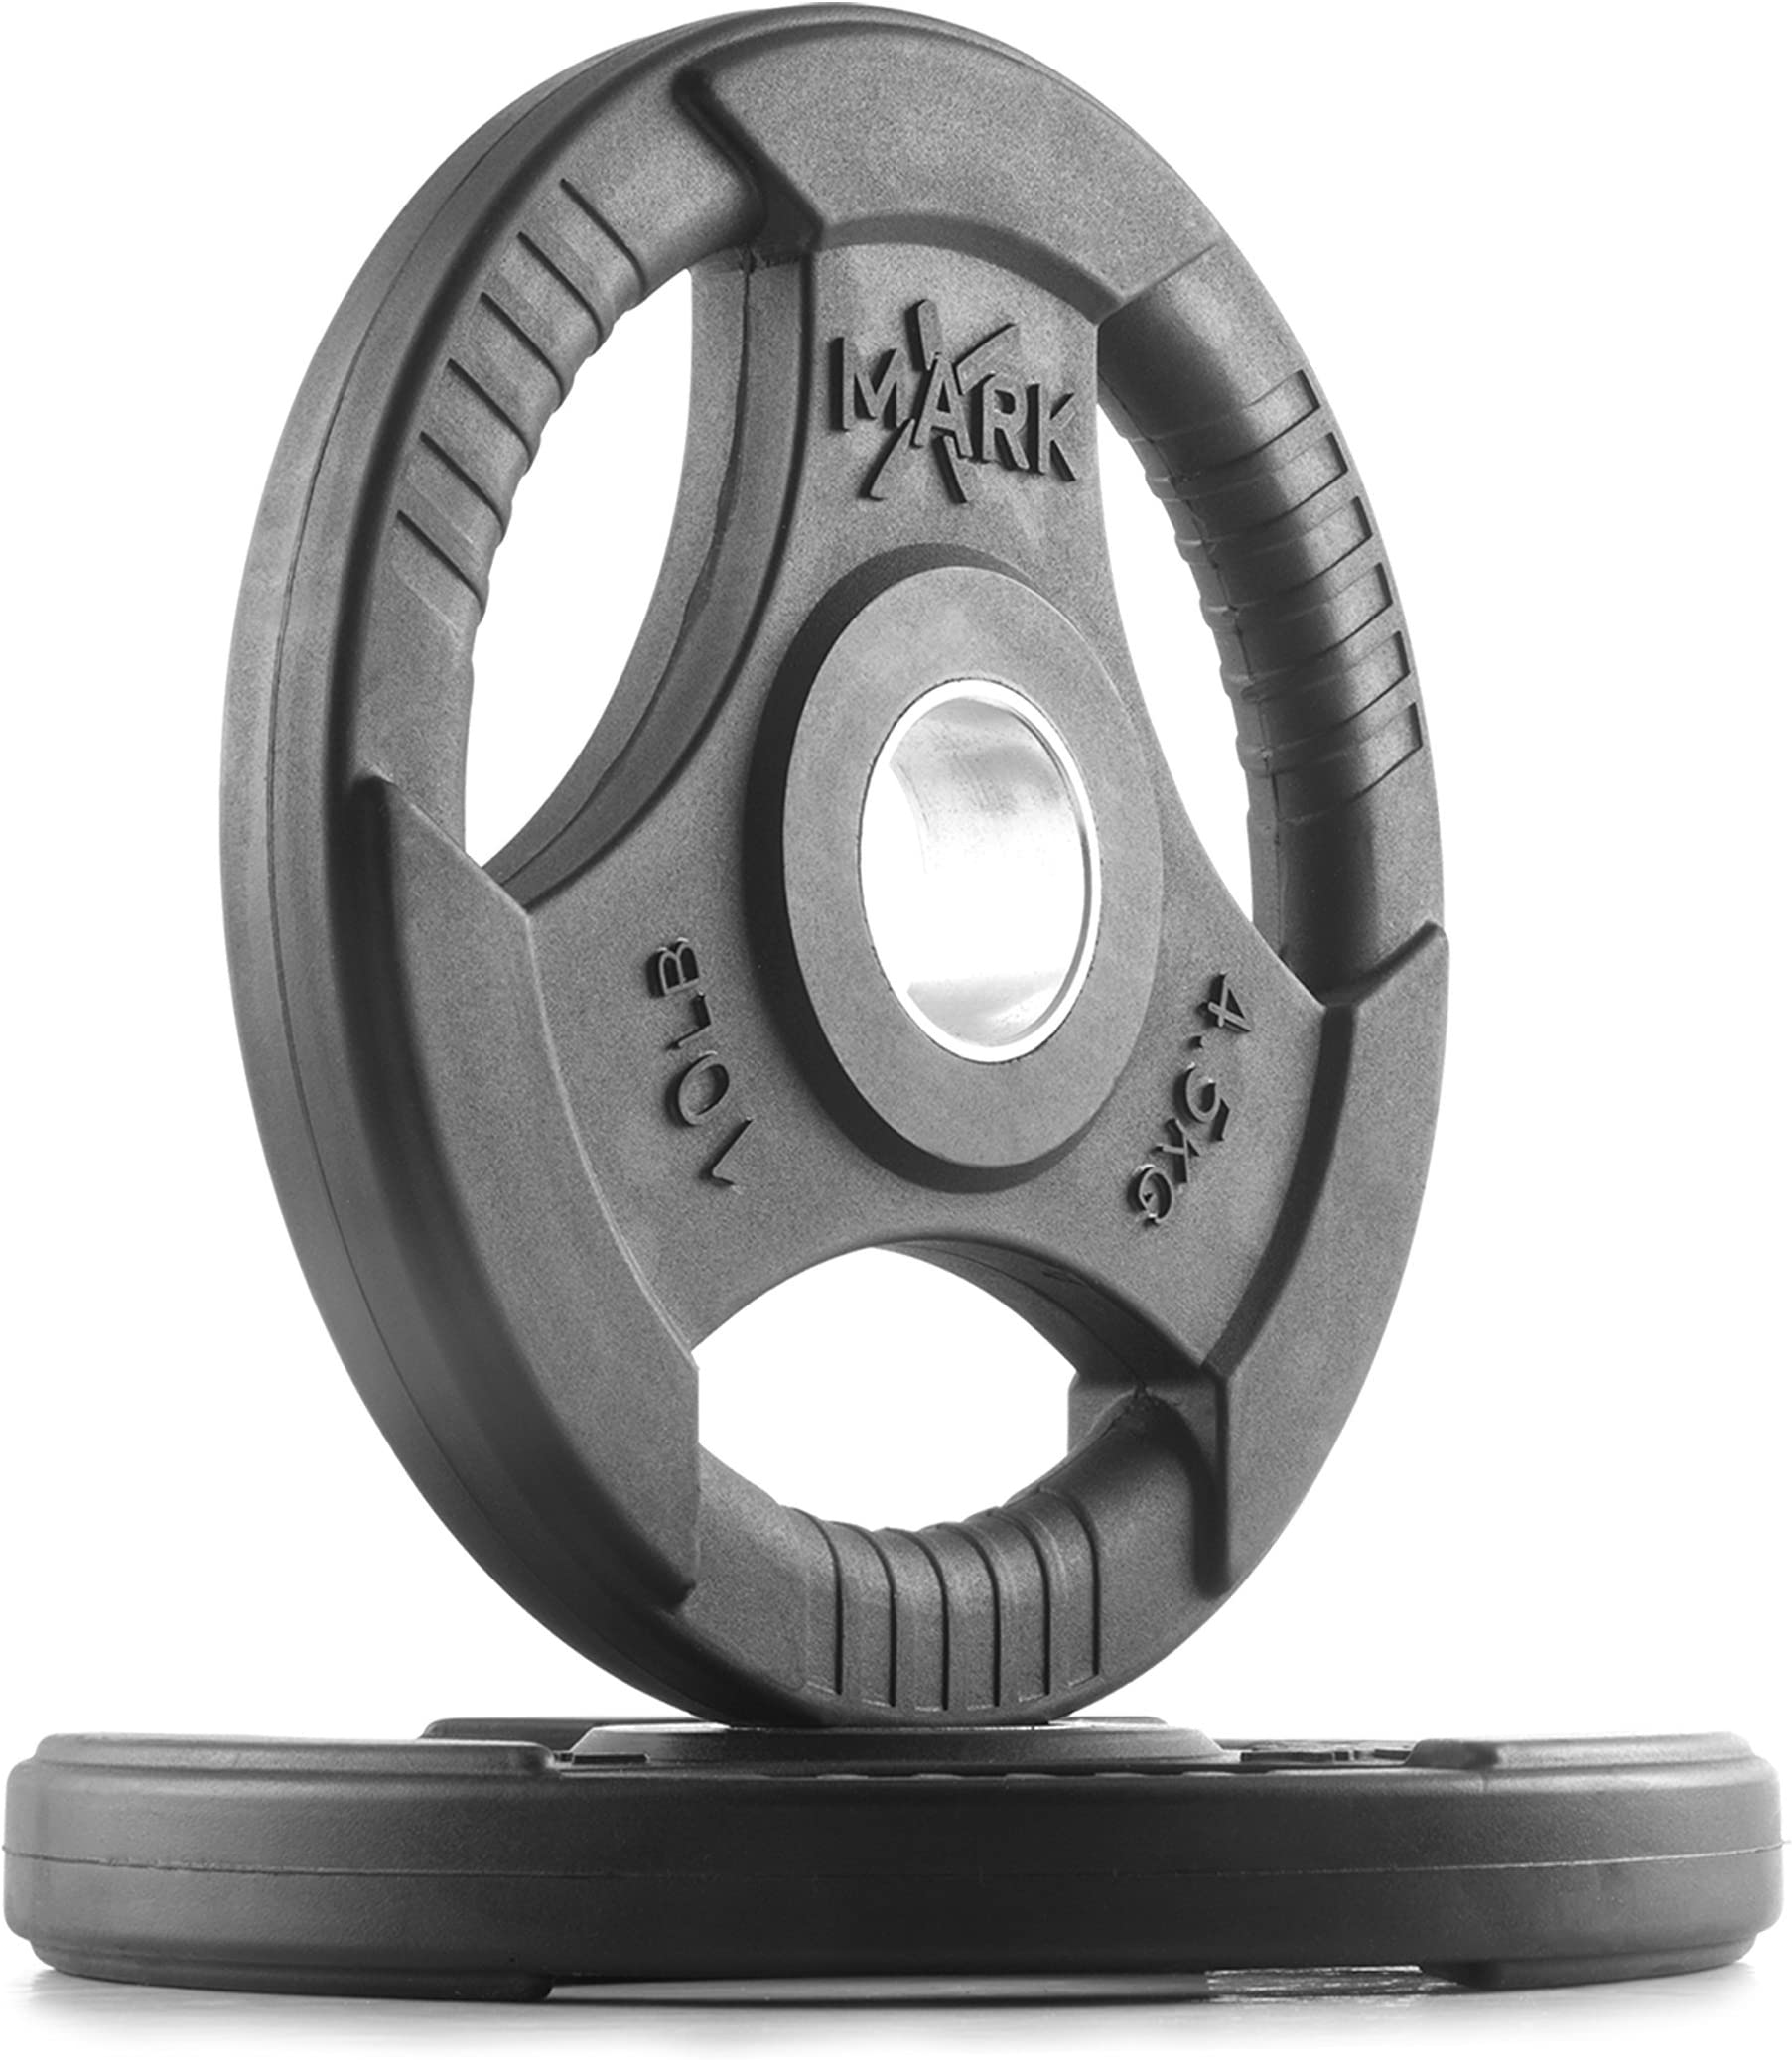 XMark Fitness Premium Quality Rubber Coated Tri-grip Olympic Plate Weights - Sold in Pairs  sc 1 st  Amazon.com & Plates Weight Plates | Amazon.com